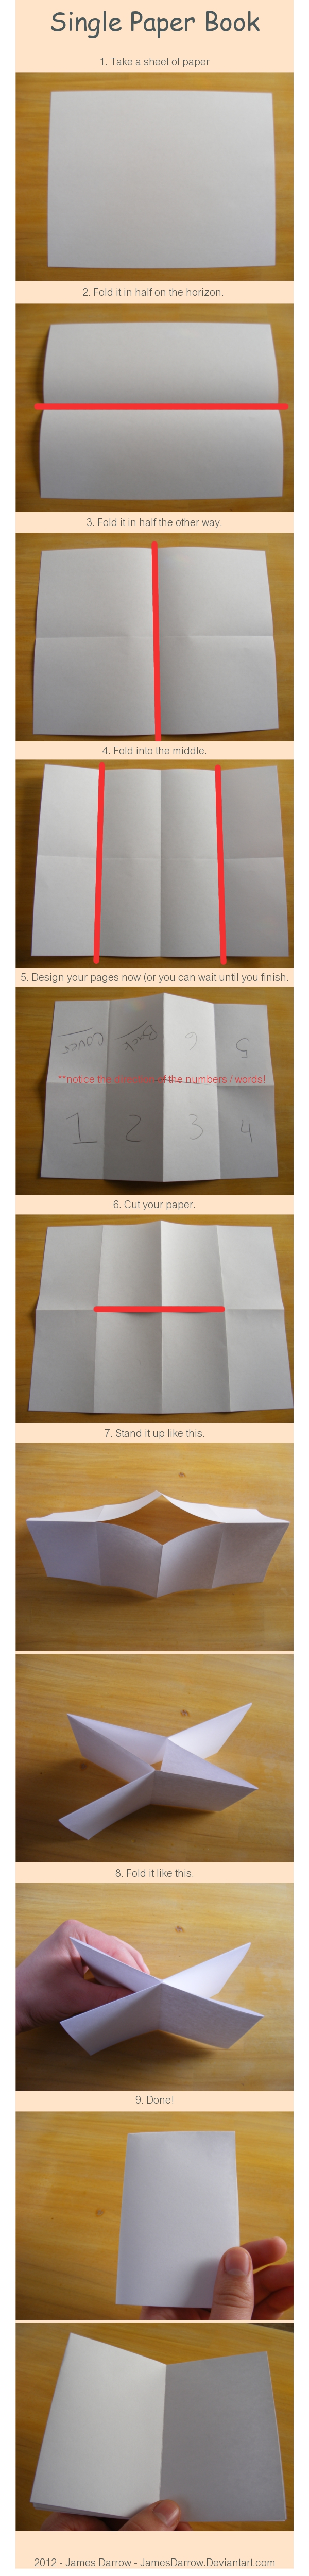 How To Make A Book Mini ~ How to make a foldable mini book from one sheet of paper